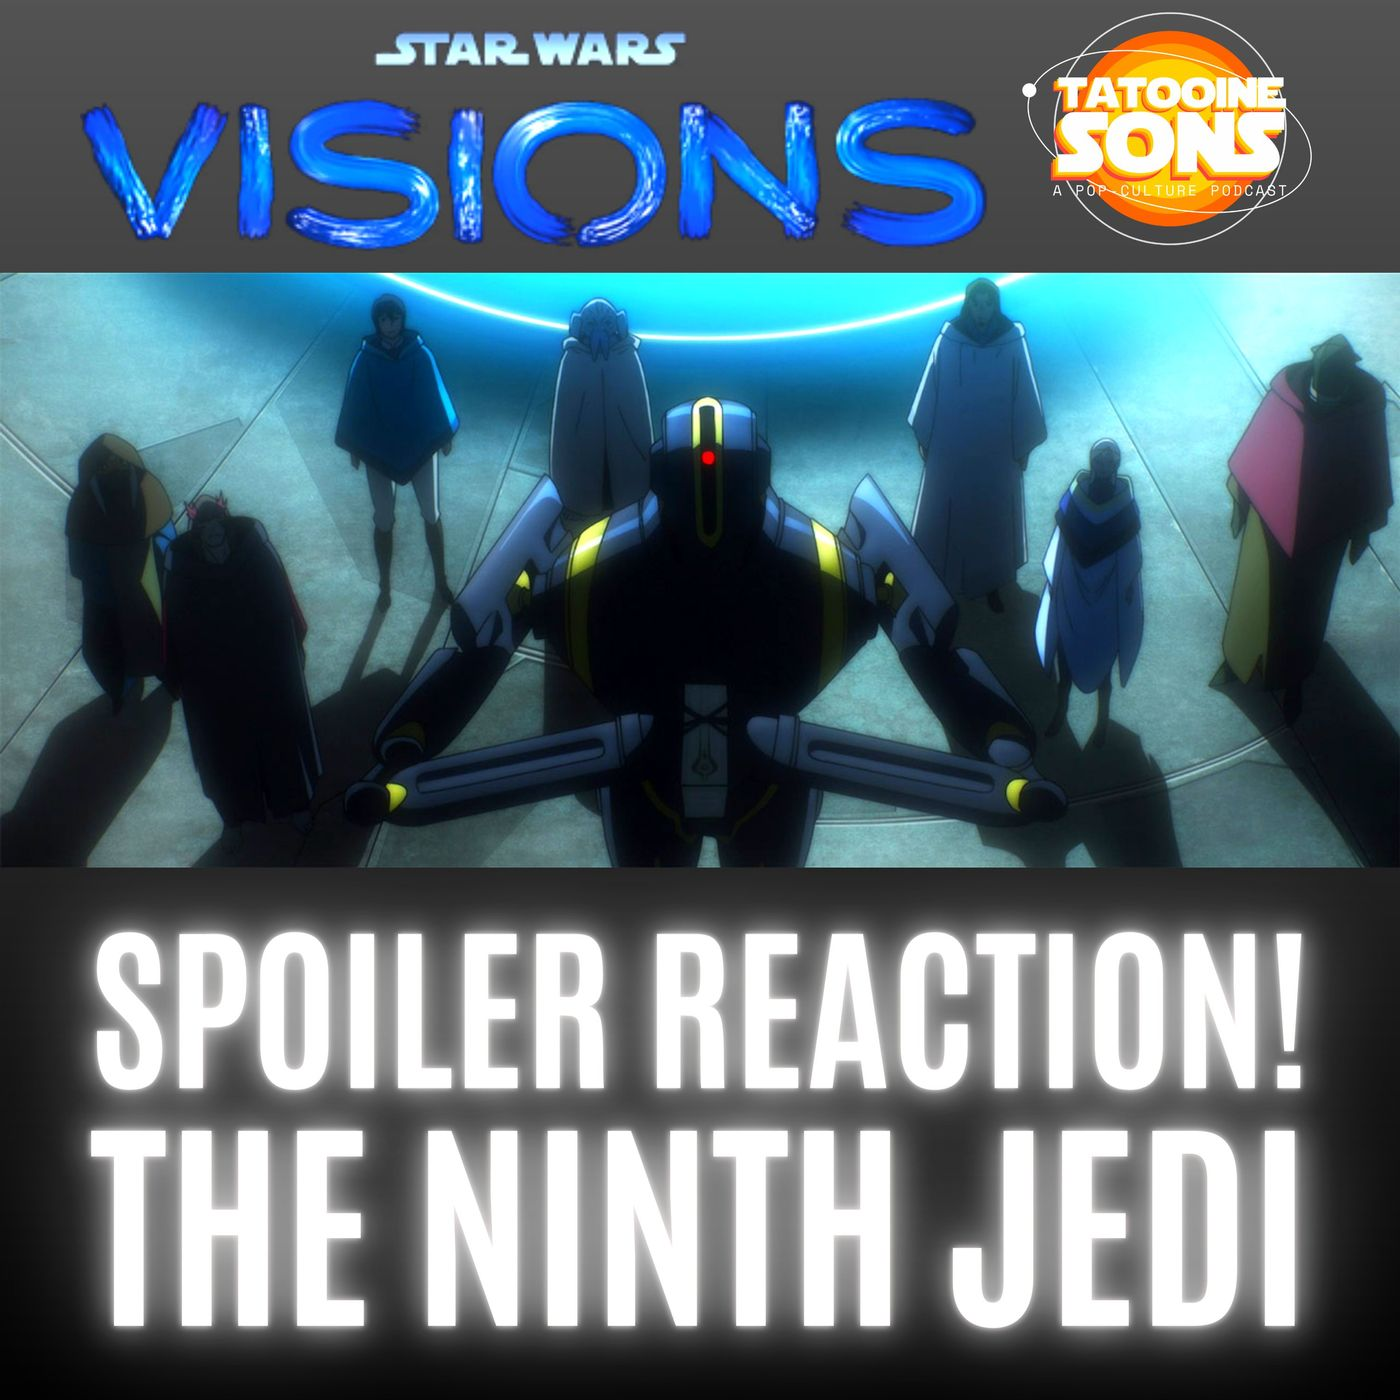 SPOILER REACTION To Star Wars Visions - The Ninth Jedi